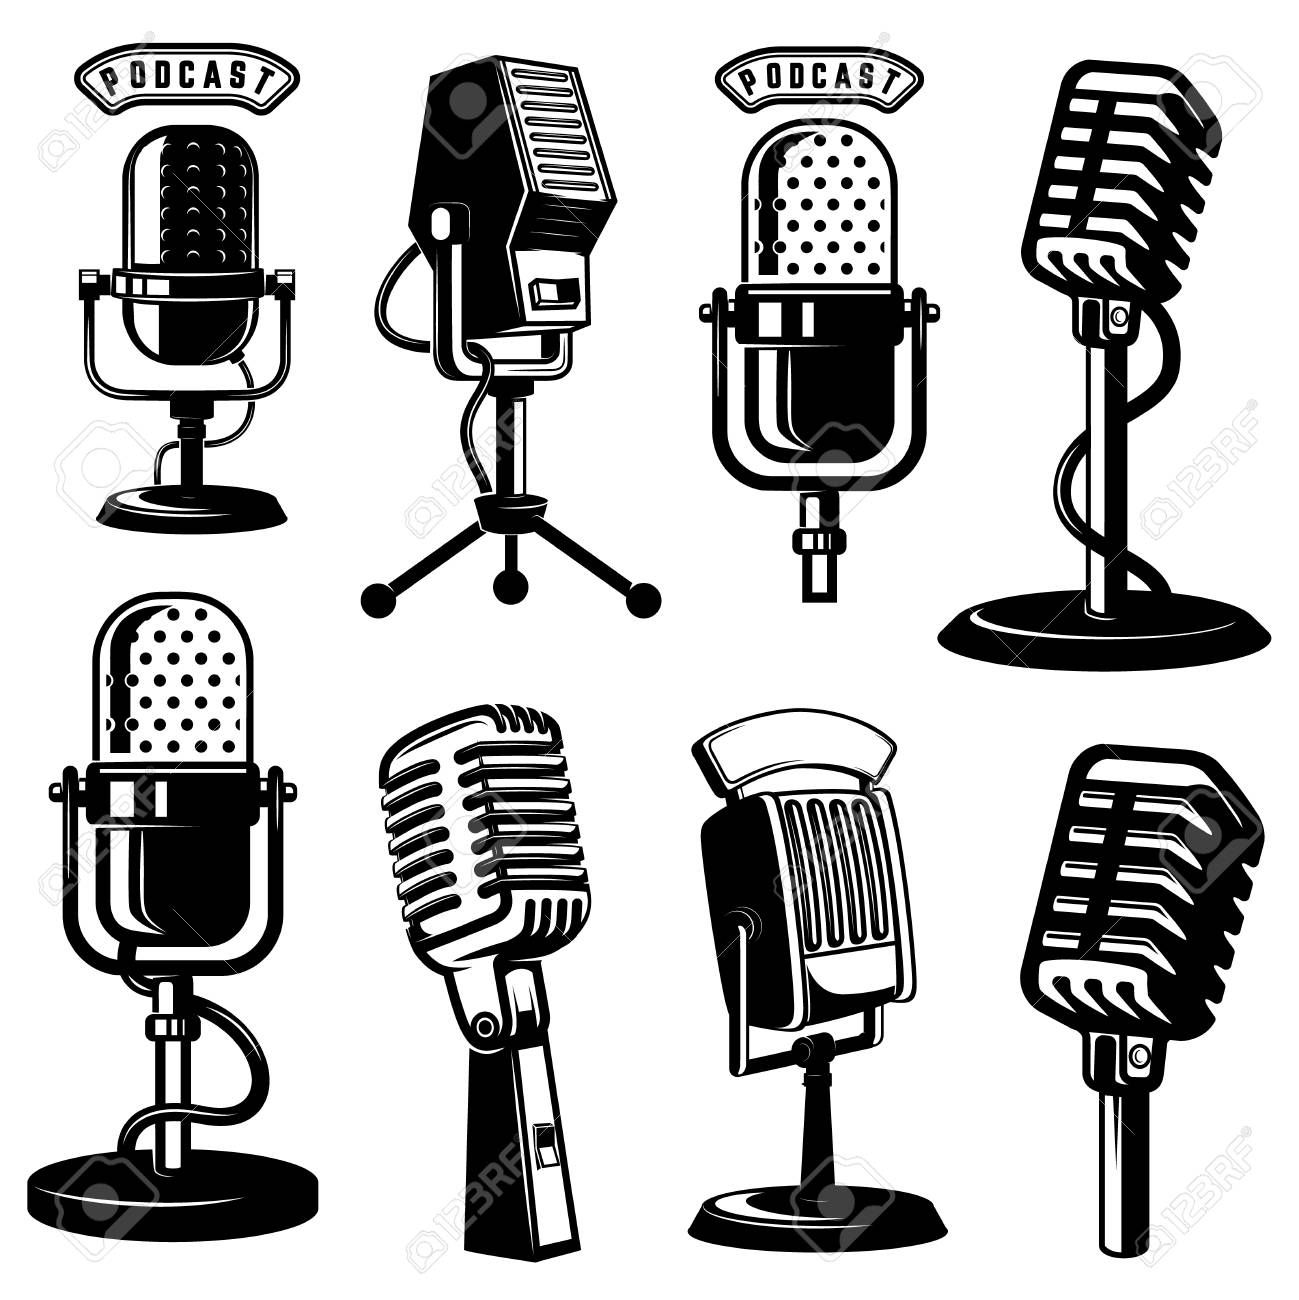 Set Of Retro Style Microphone Icons Isolated On White Background Vector Illustration Illustration Ad Micr Microphone Icon Design Element Background Design